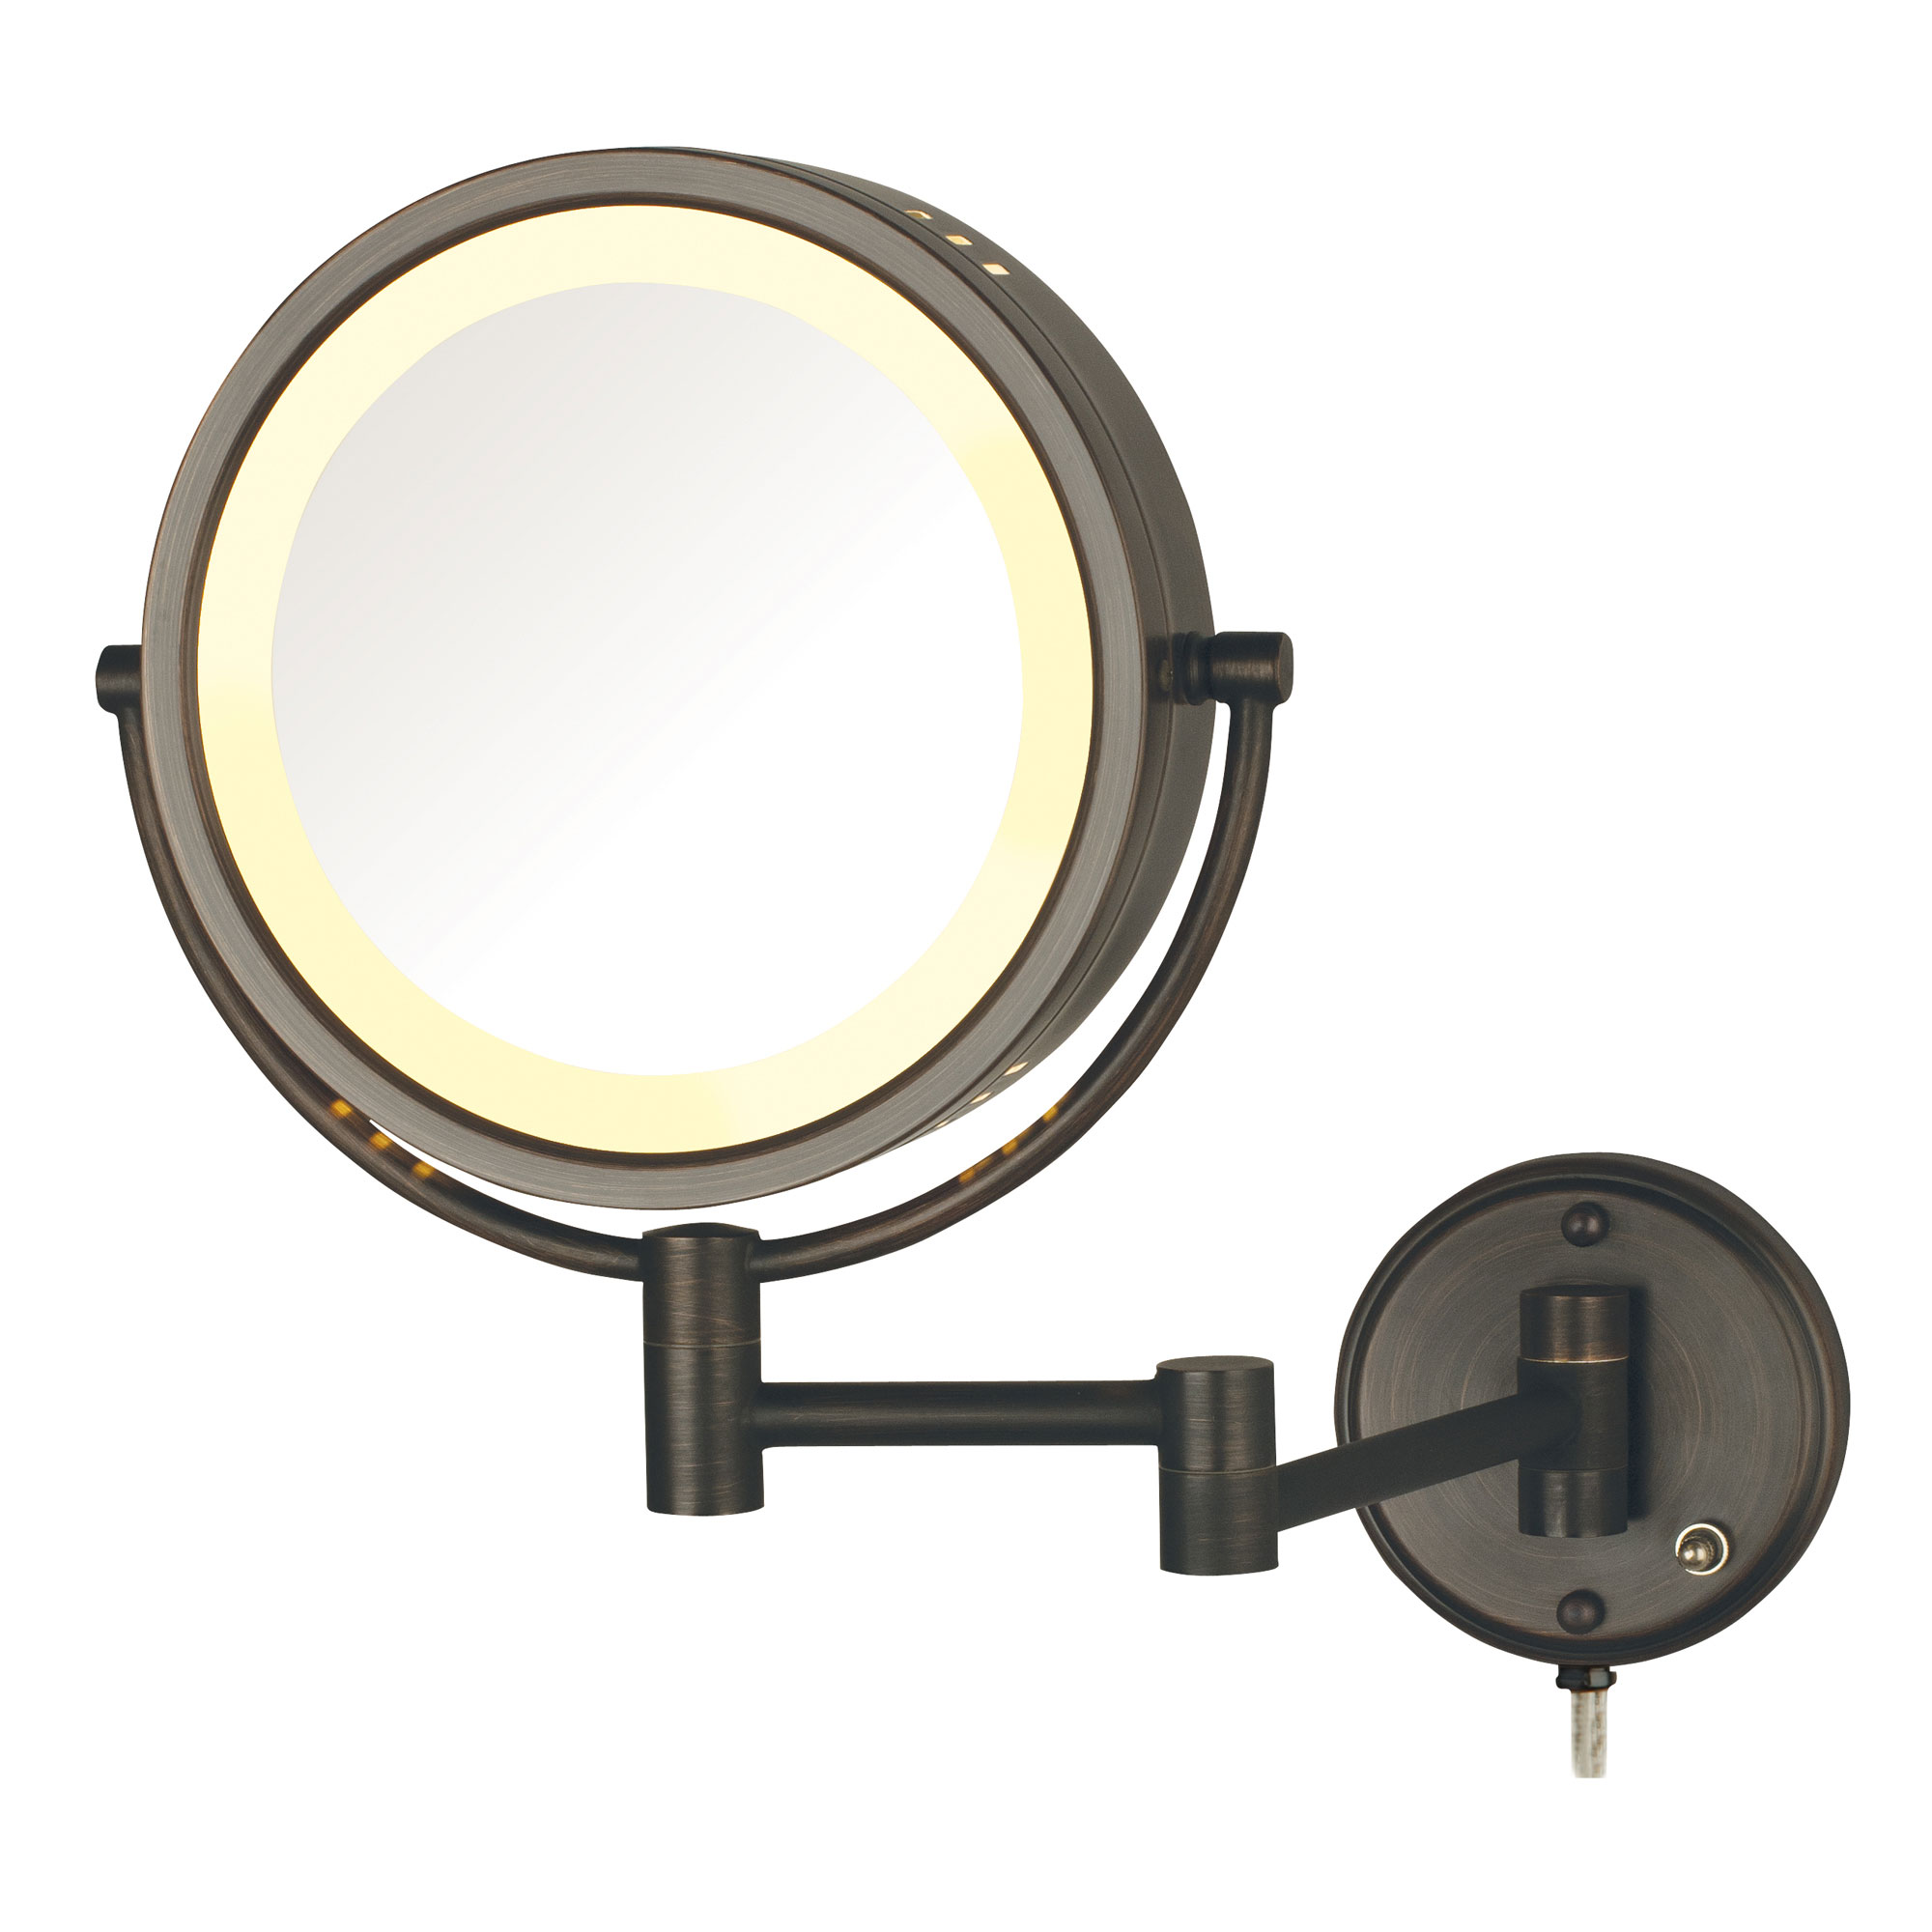 jerdon hl75bz 8 5 lighted wall mount mirror 1x 8x magnification bronze. Black Bedroom Furniture Sets. Home Design Ideas